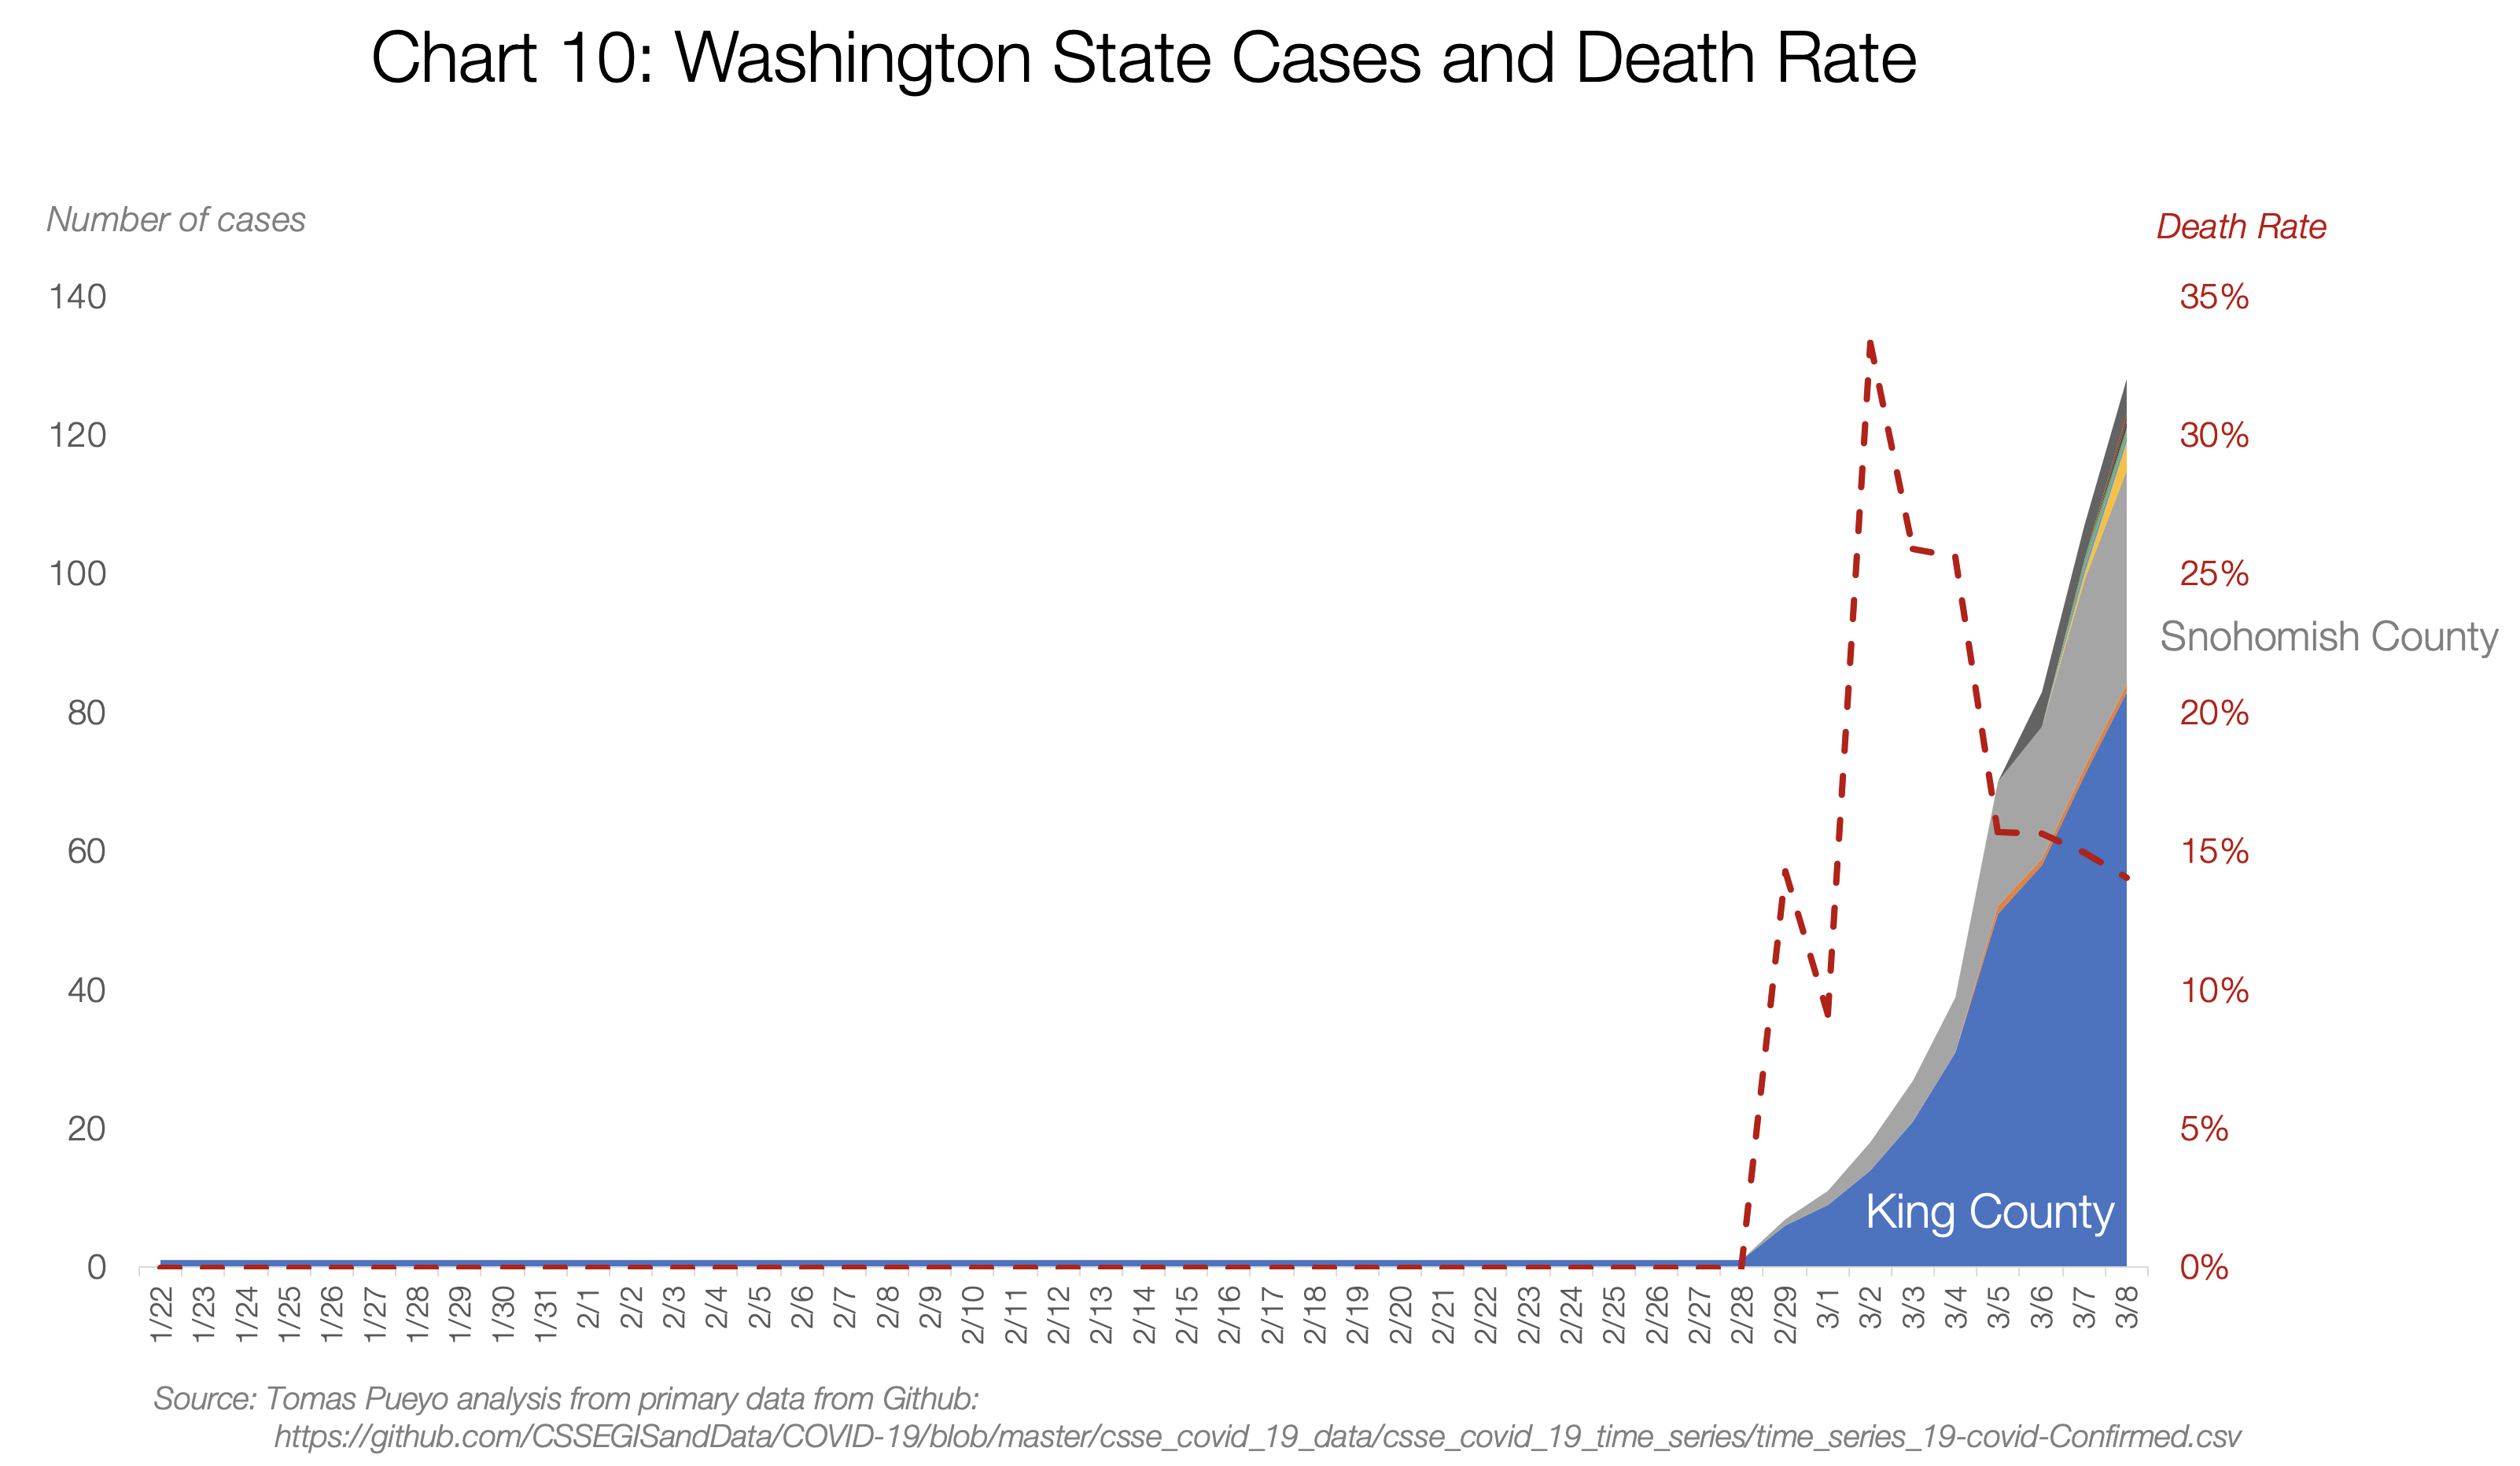 10. Washington State Cases and Death Rate